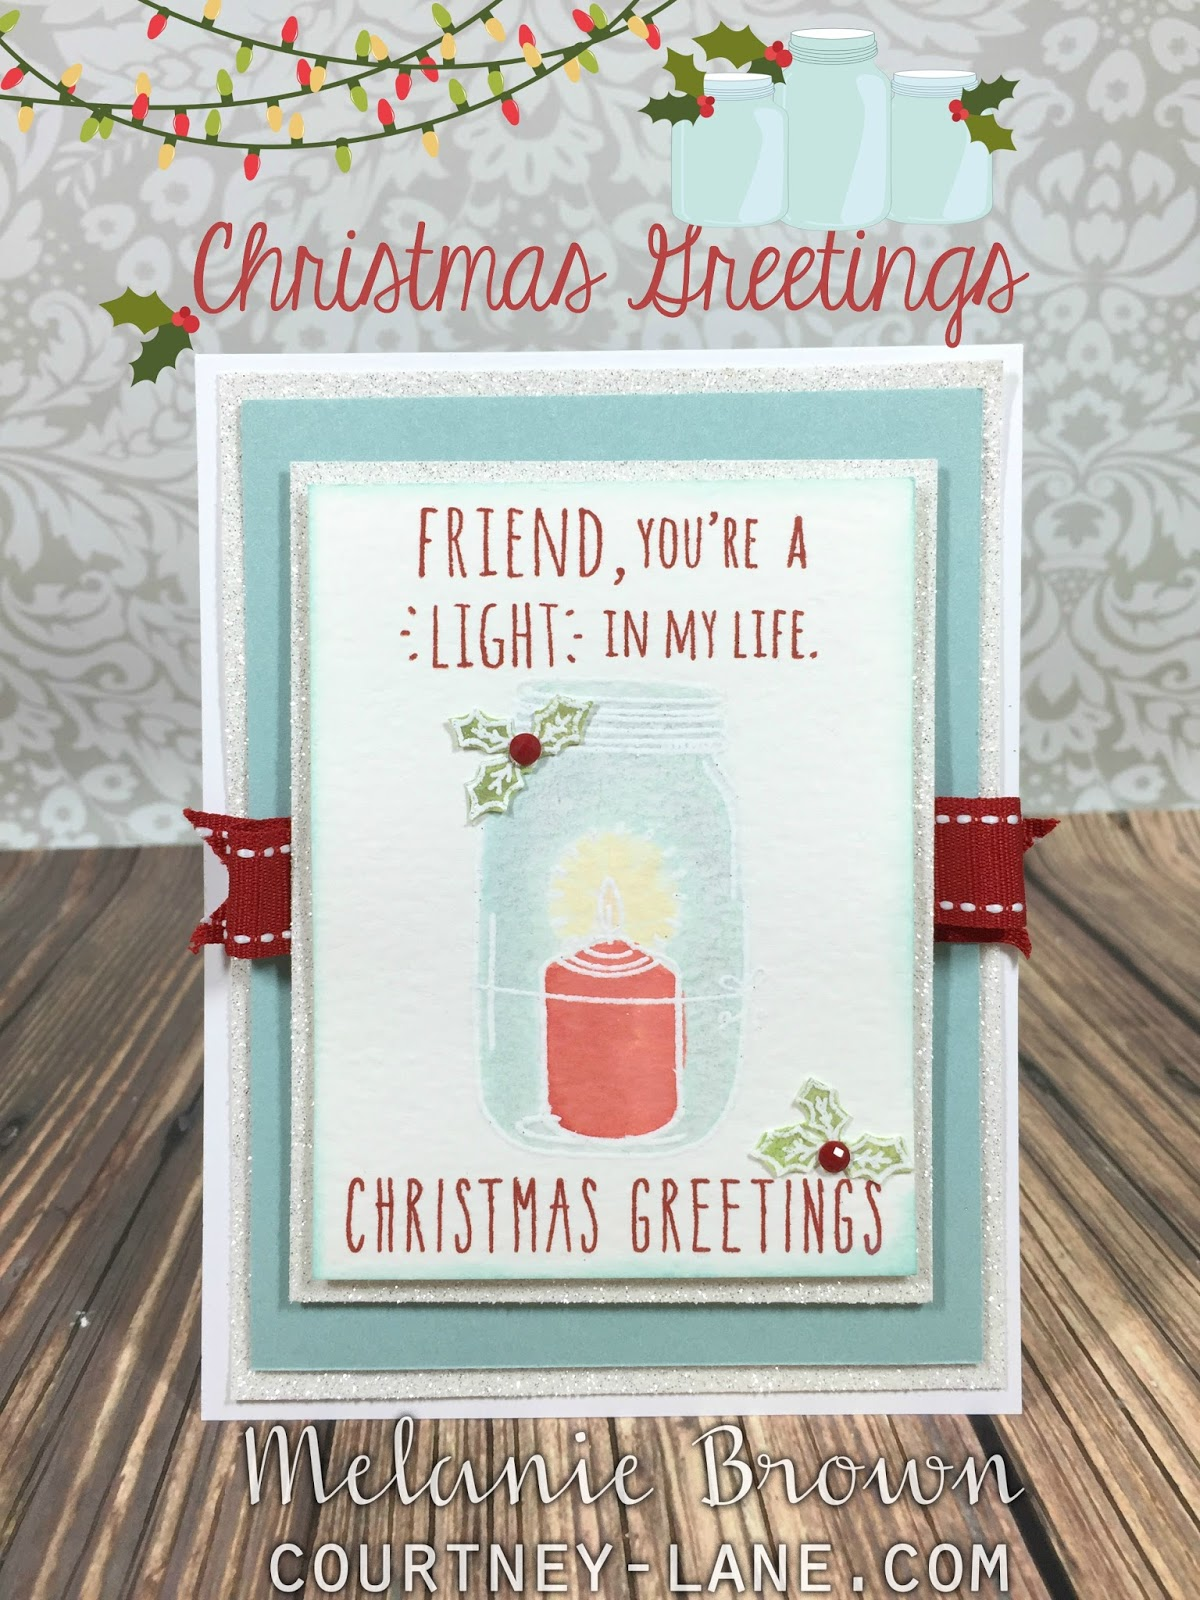 Courtney Lane Designs Christmas Greetings Stamped Card